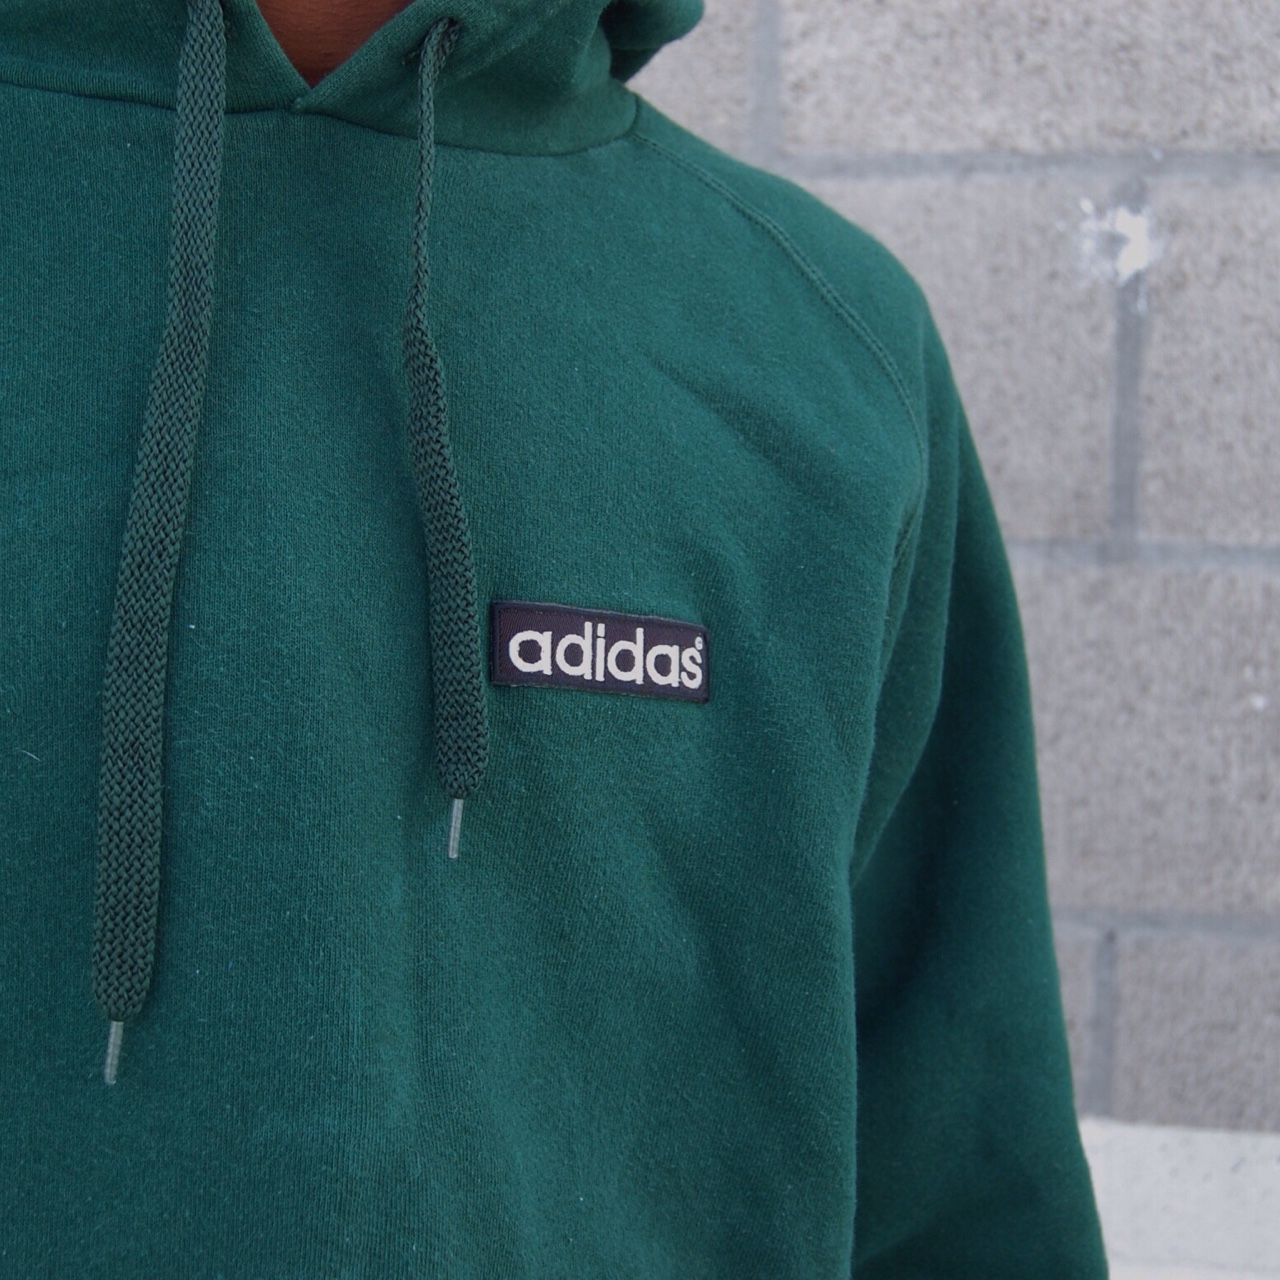 Vintage Adidas army green hoodie made in USA fits Depop